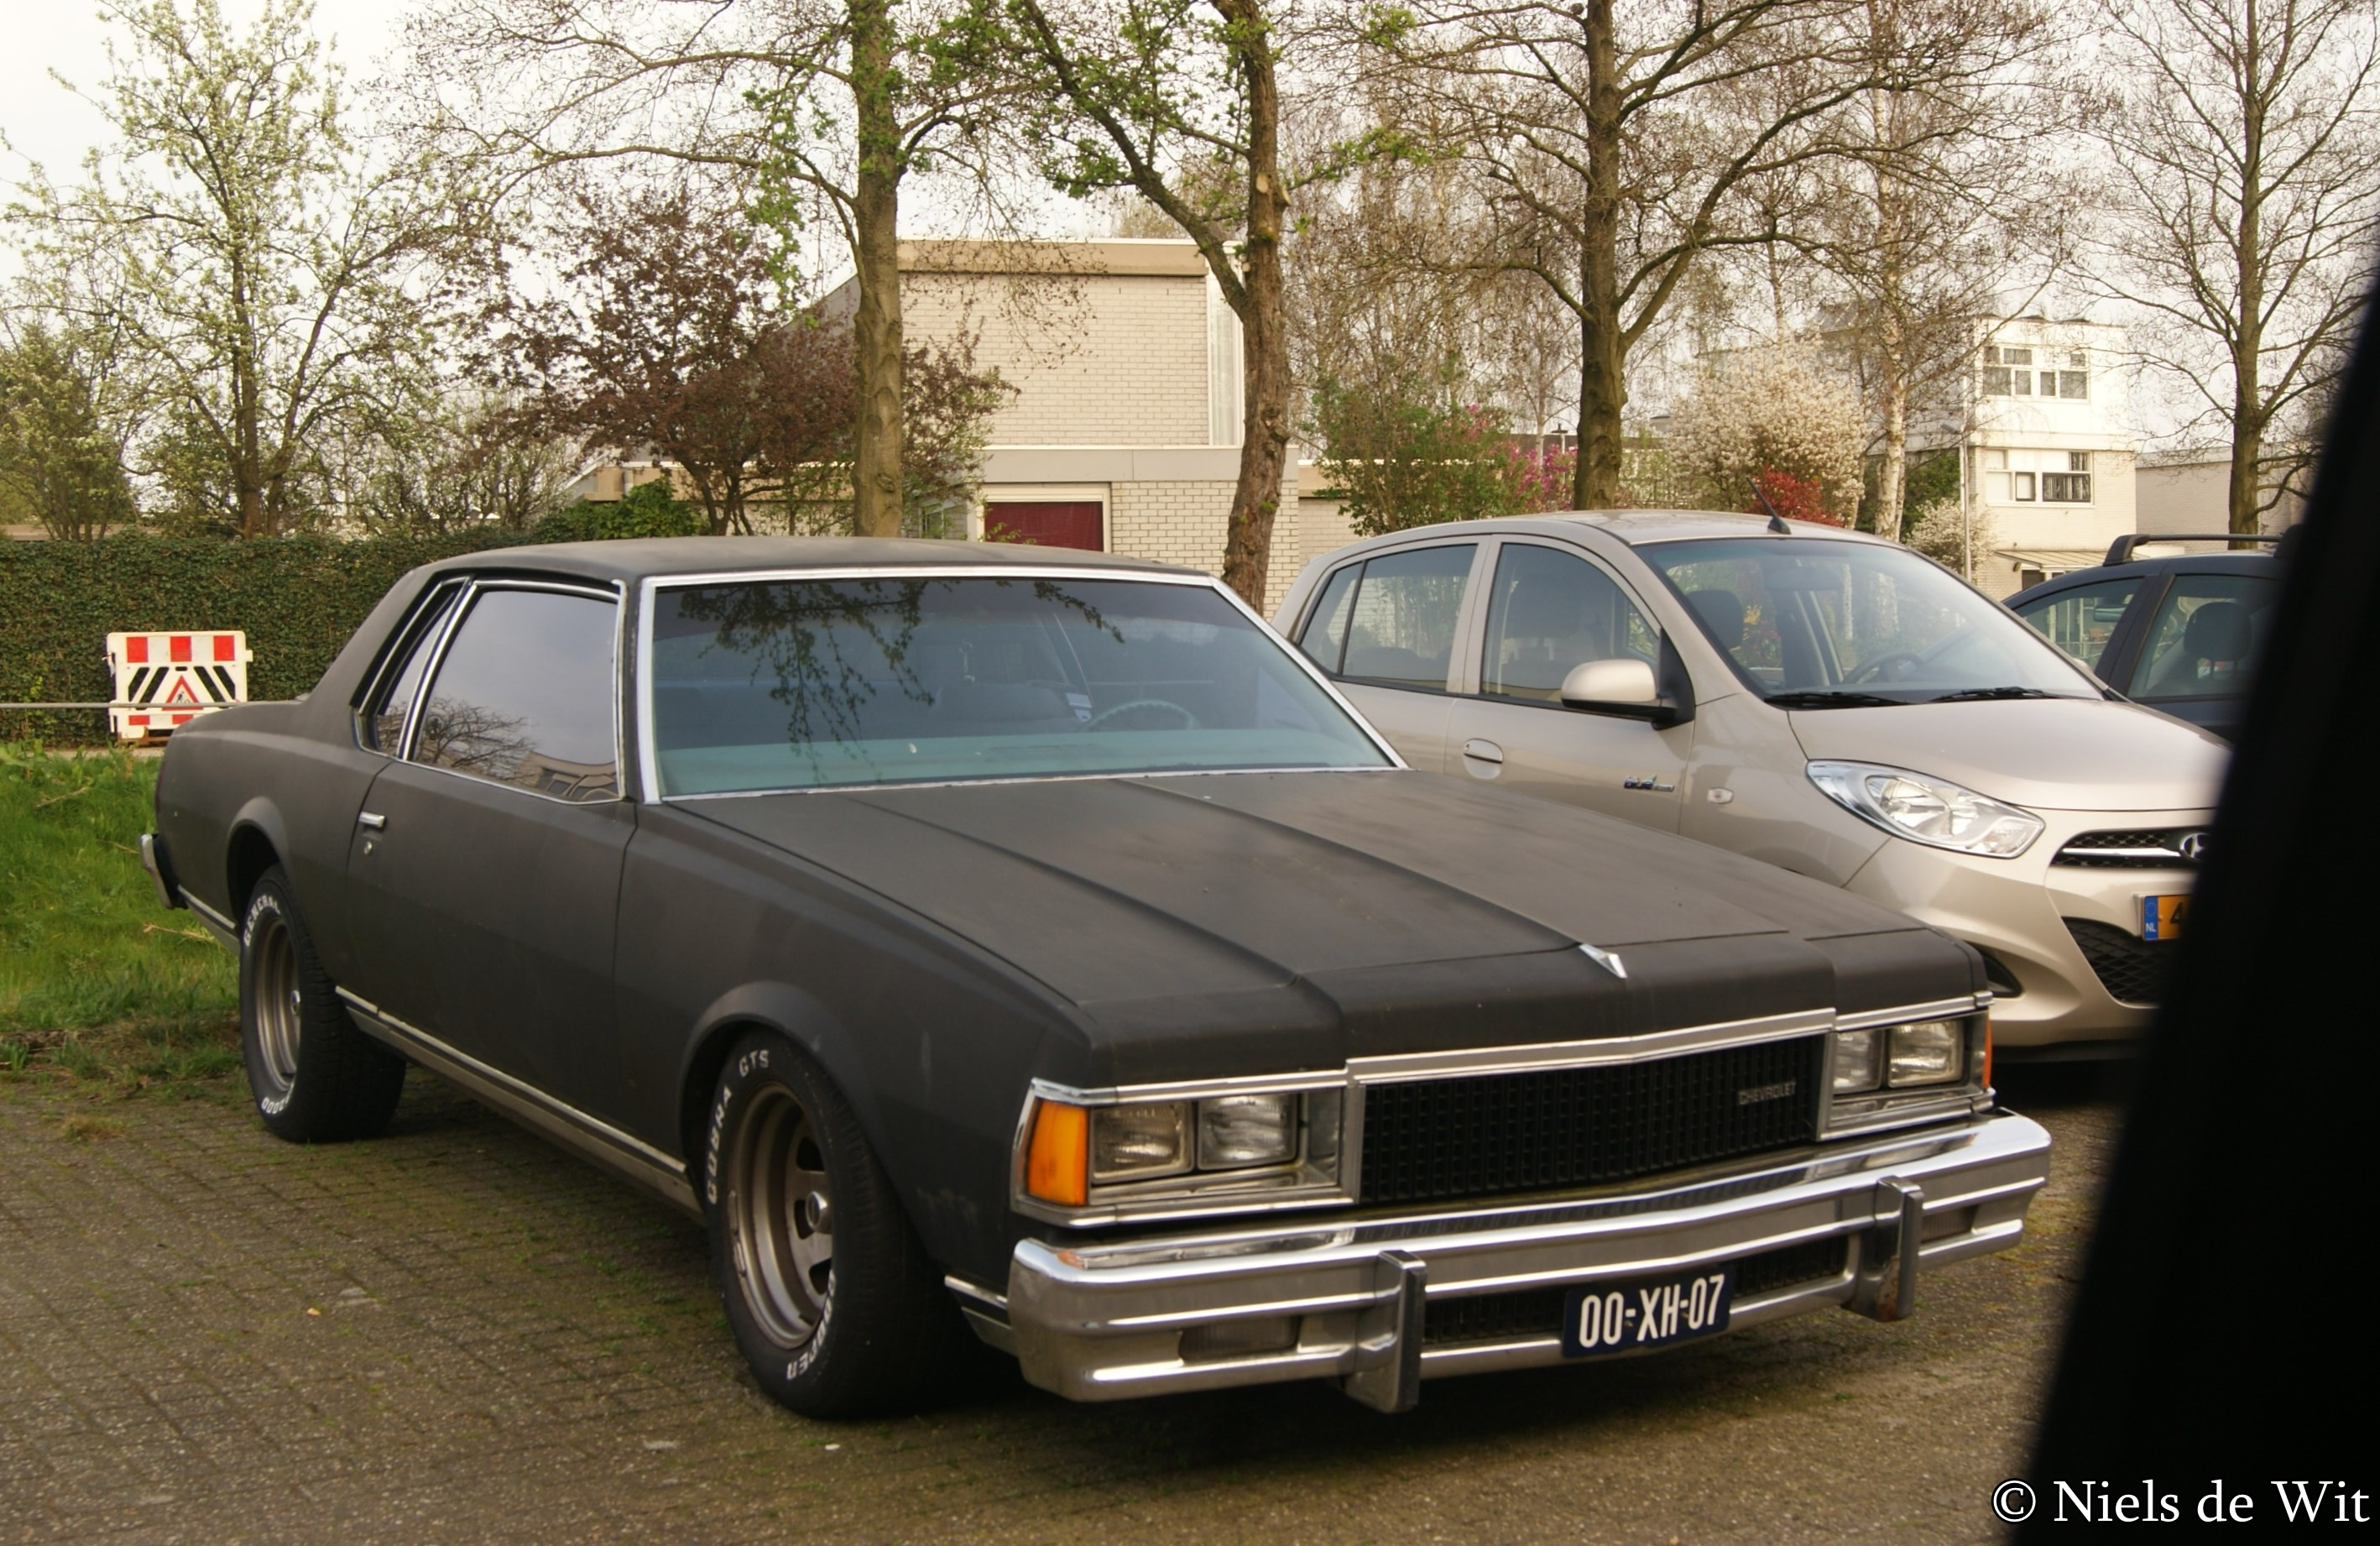 File:1978 Chevrolet Caprice Coupe (13545774355) jpg - Wikimedia Commons